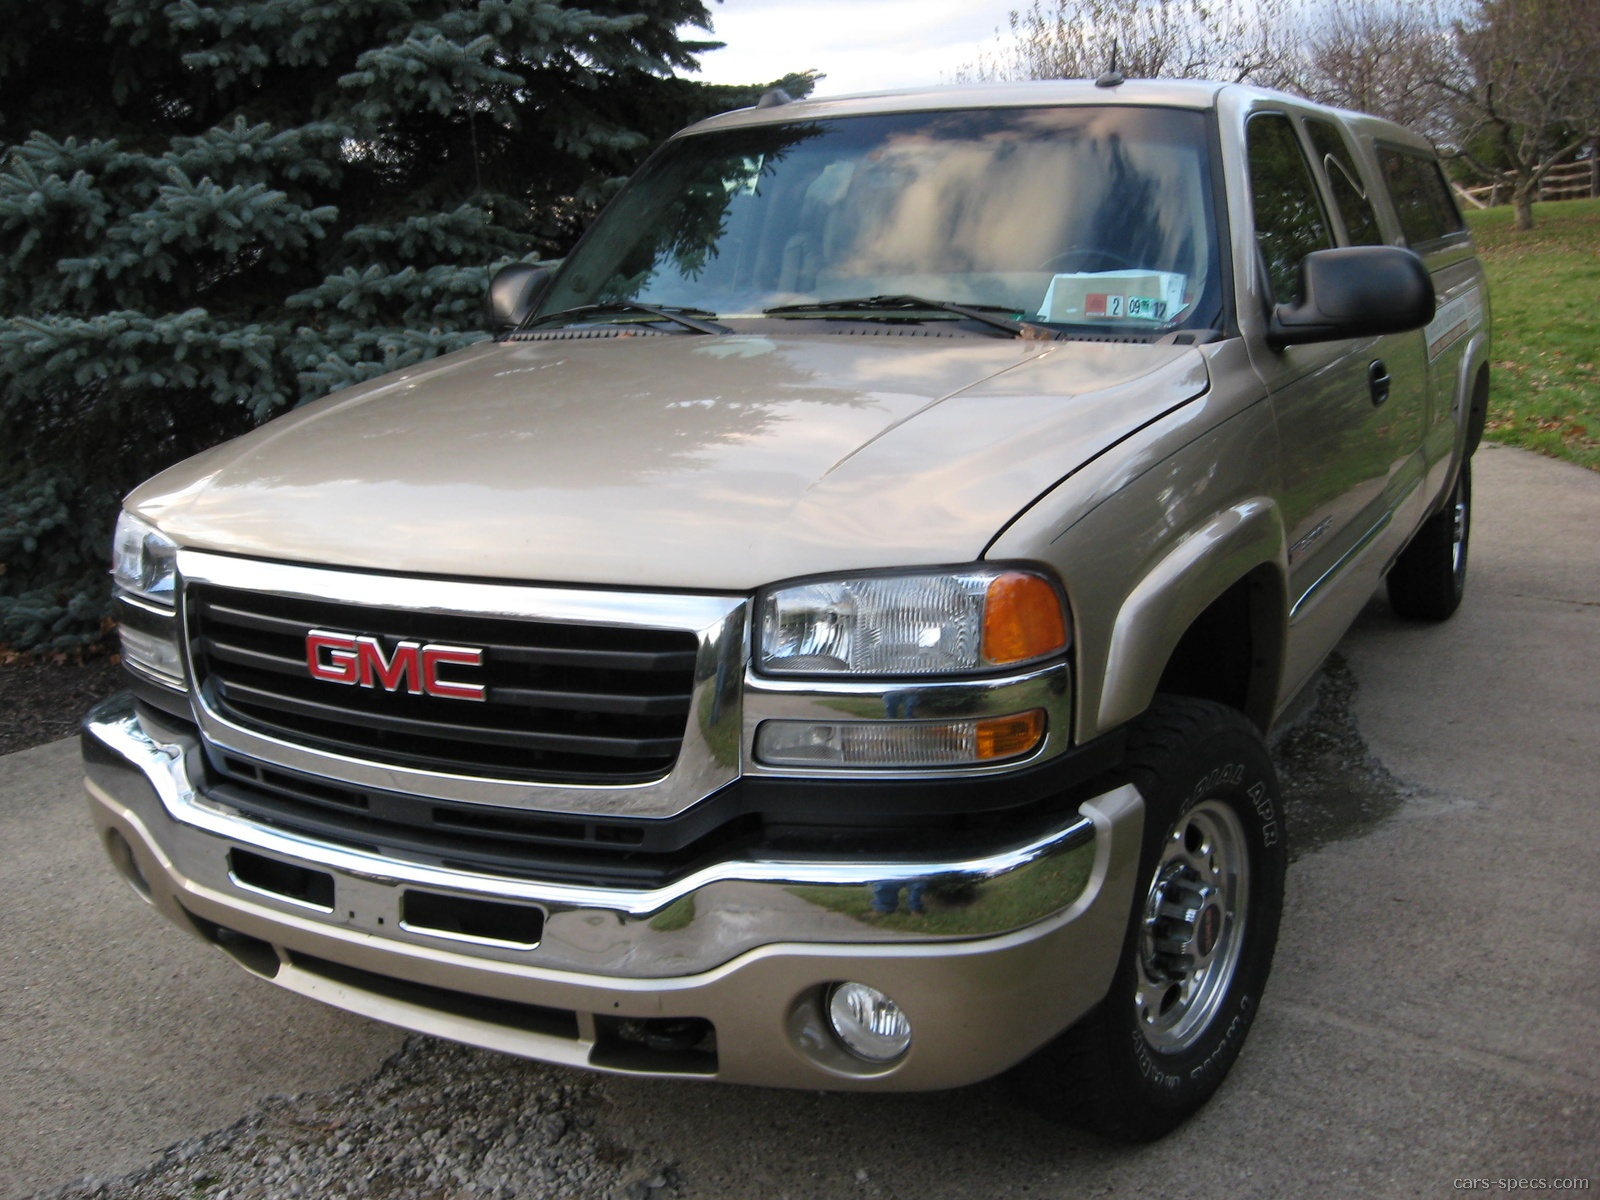 1998 Gmc Sierra 1500 Extended Cab Specifications  Pictures  Prices